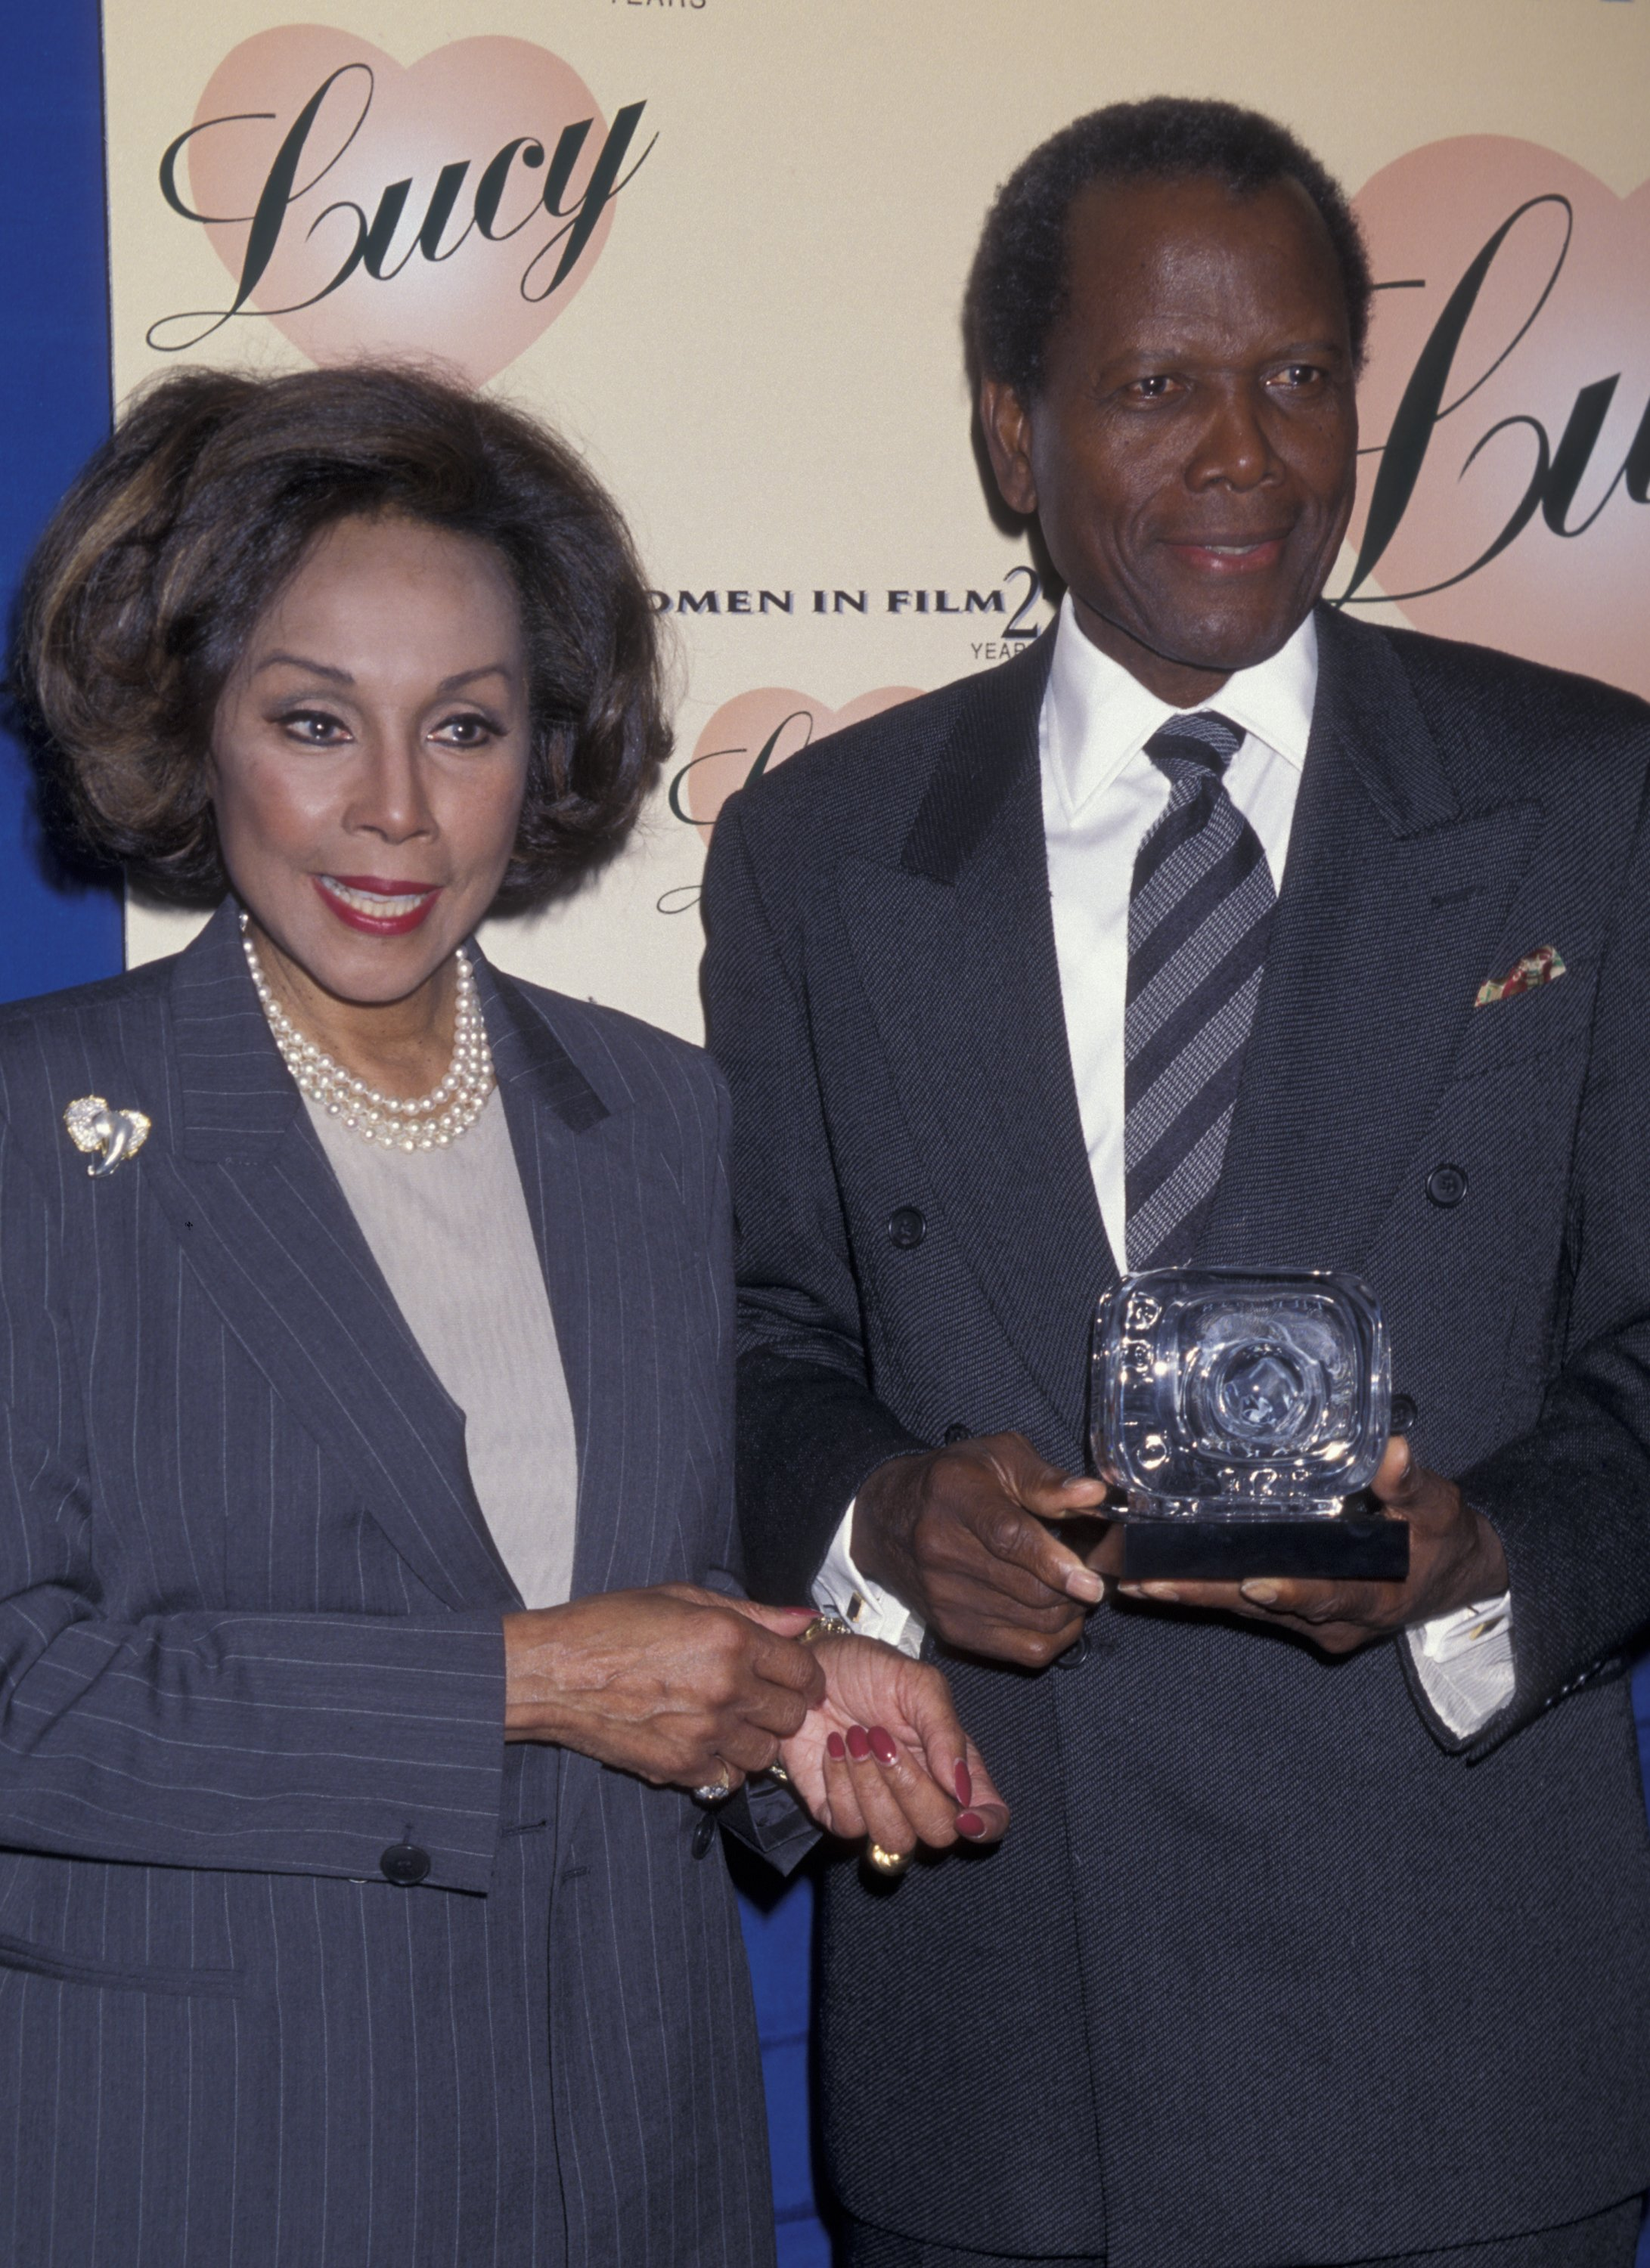 Diahann Carroll and Sidney Poitier a the Fifth Annual Women in Film Lucy Awards on September 12, 1998 in Beverly Hills, California | Photo: Getty Images